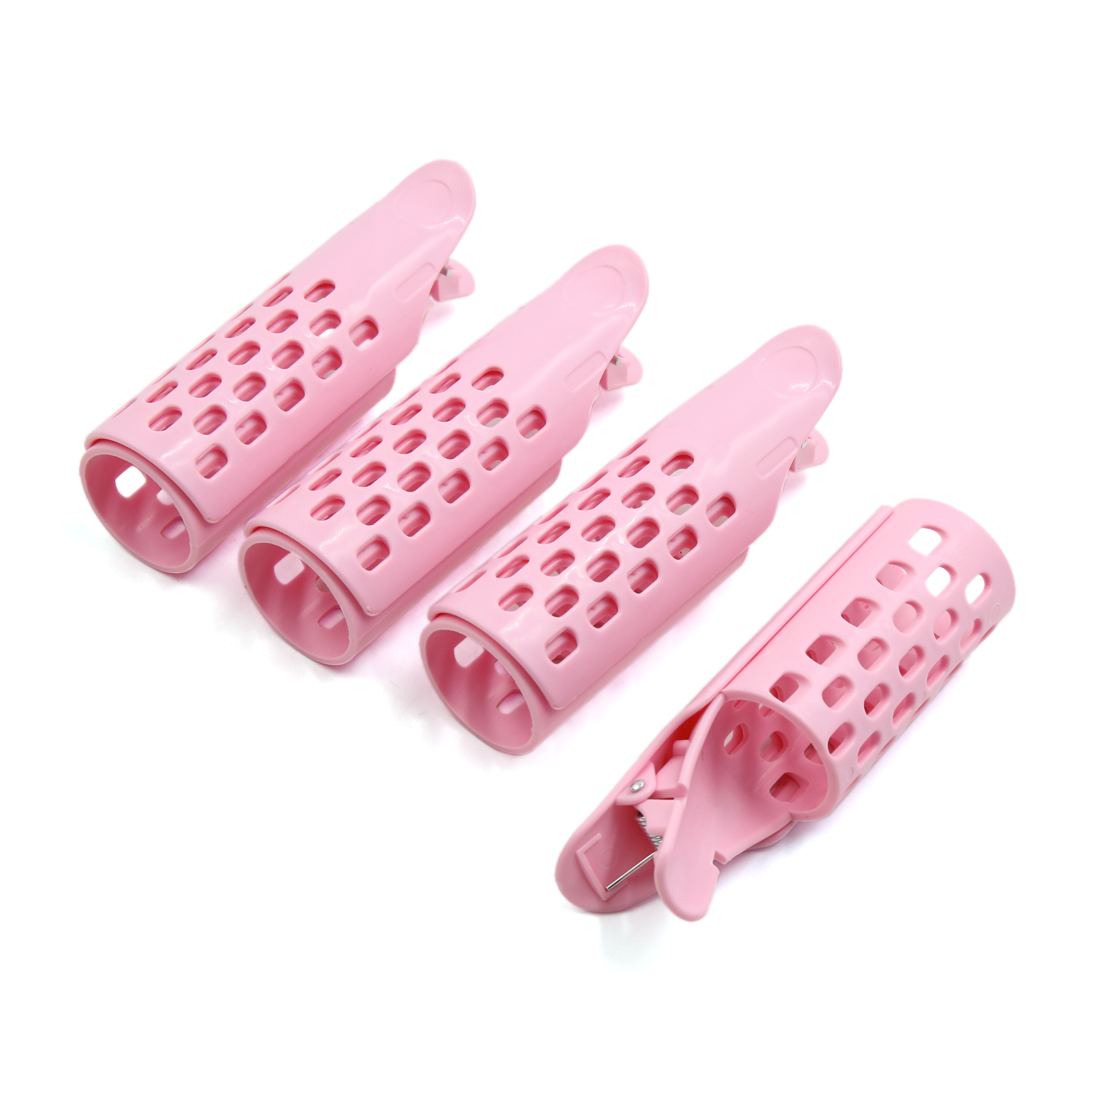 4 Pcs Pink Fringe Clip Bangs Front Curler Rollers Holder DIY Hair Styling Tool